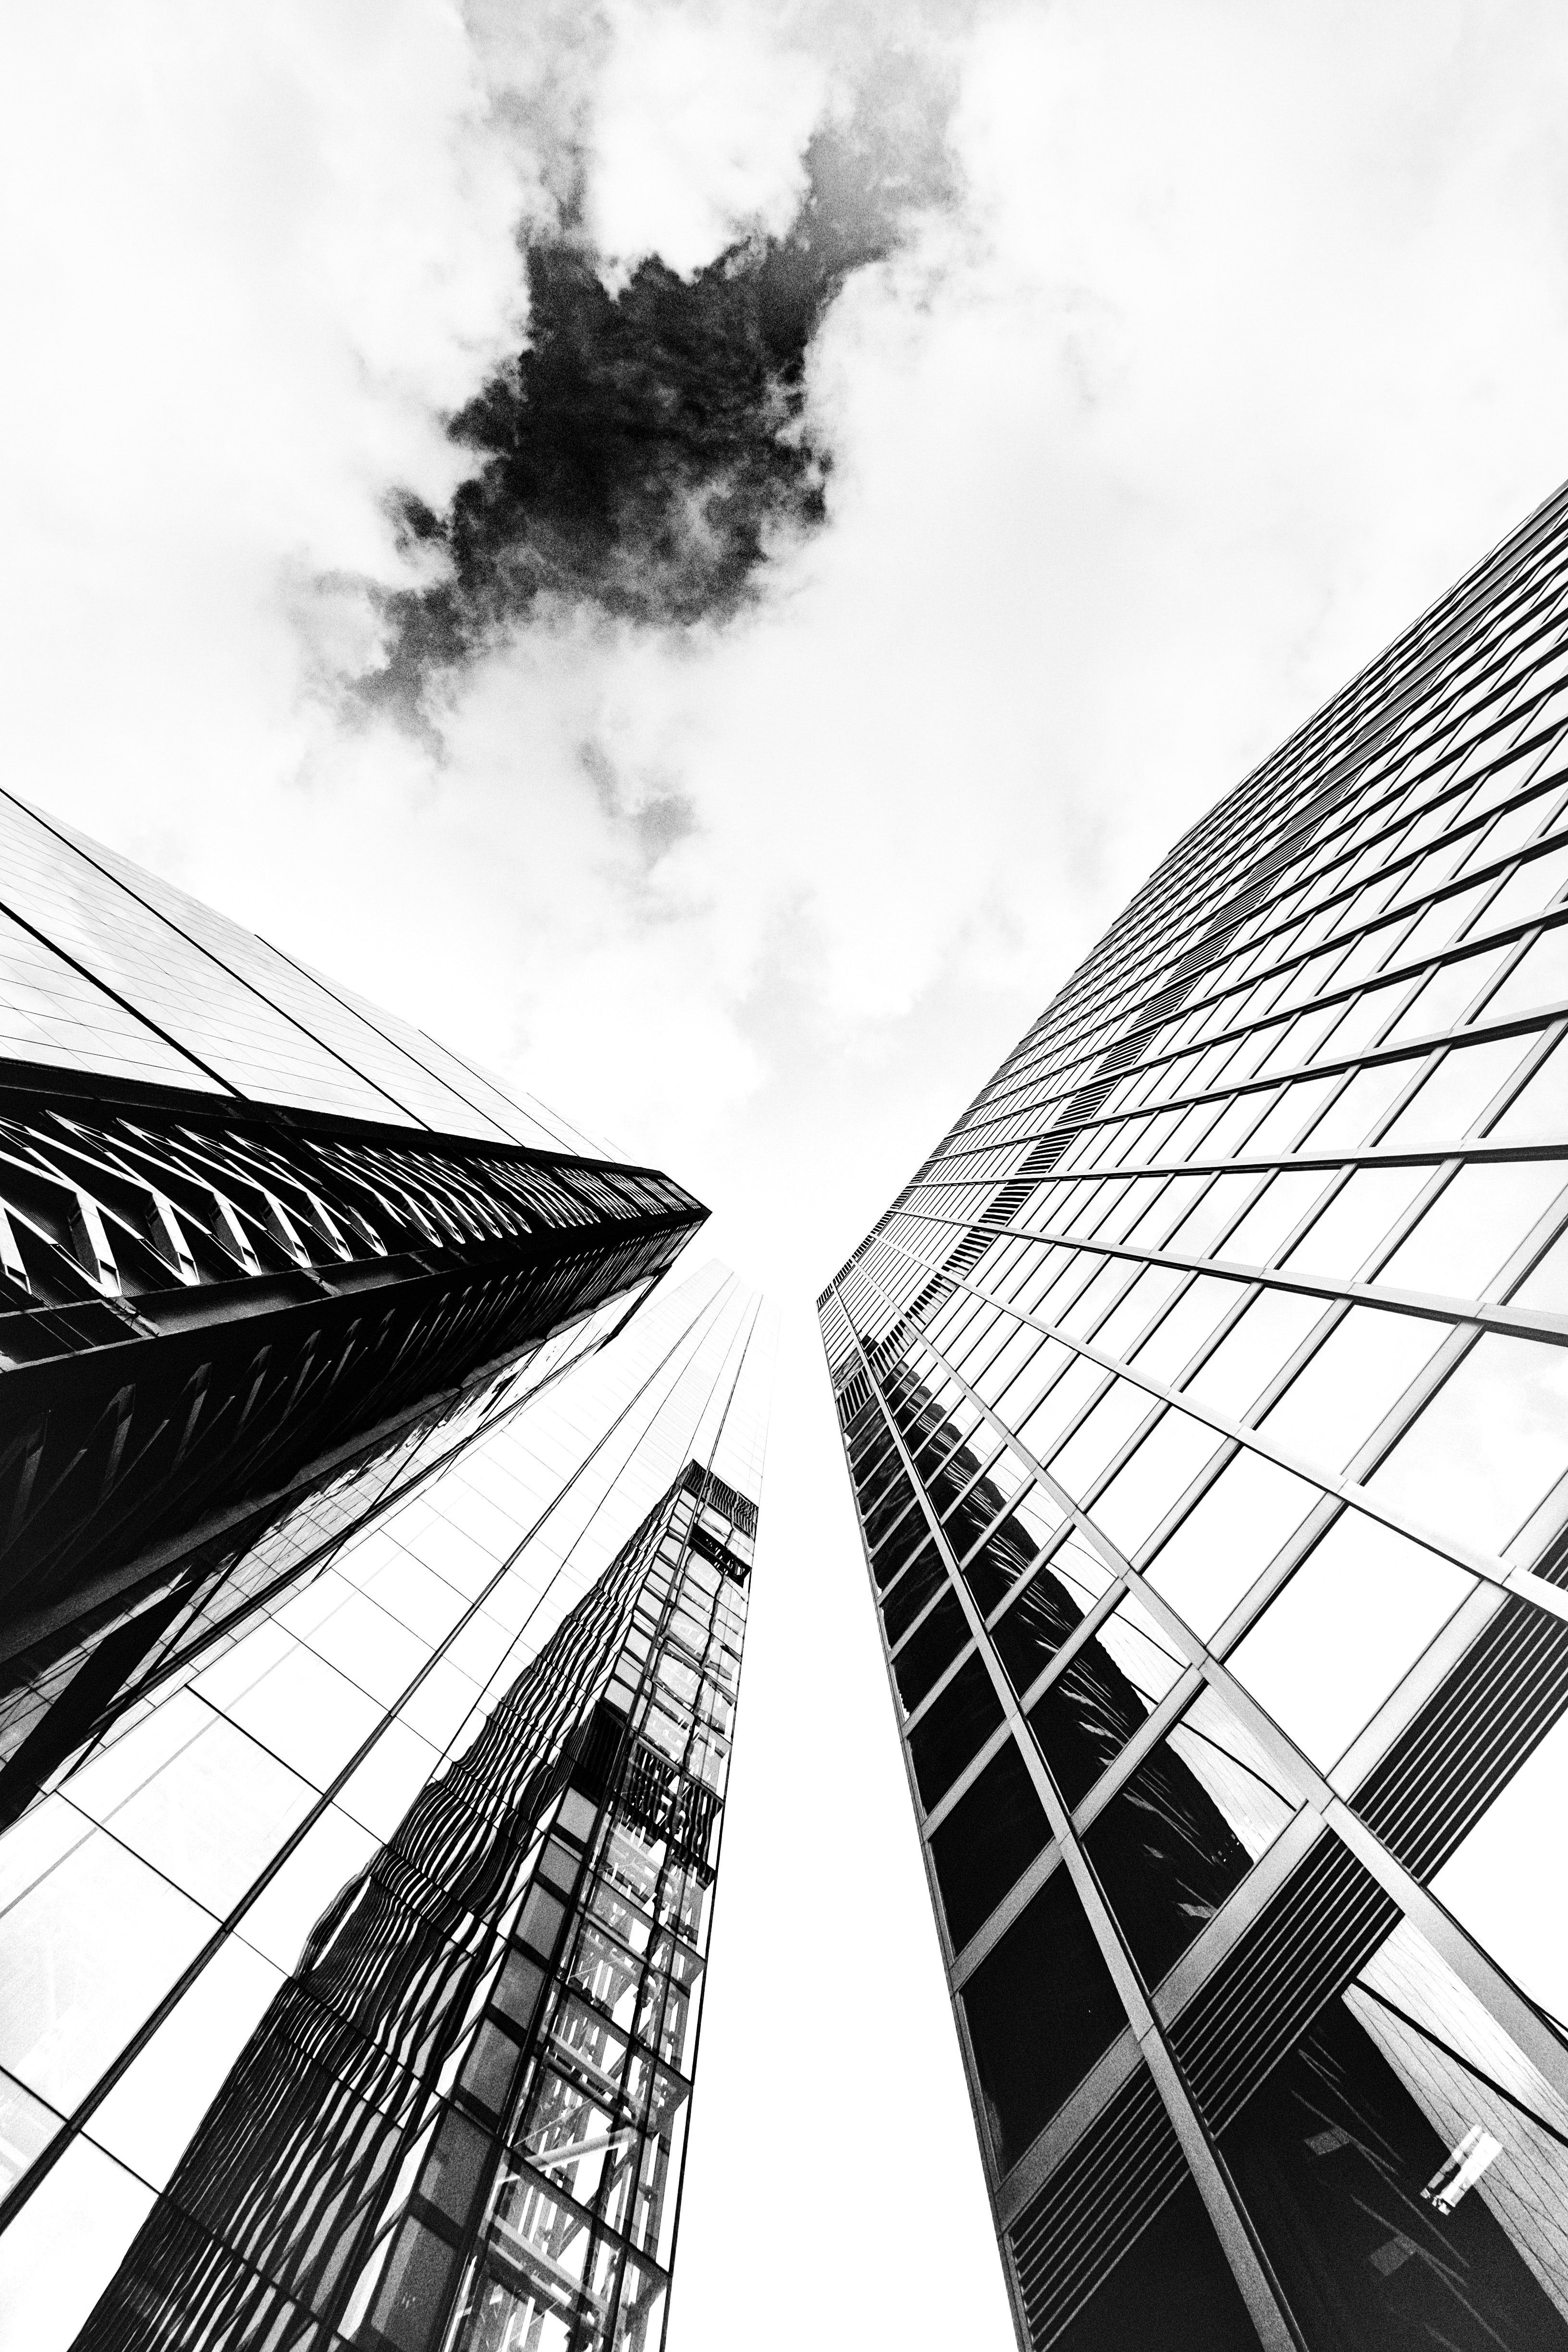 A low-angle monochrome shot of glass skyscraper facades under cloudy sky